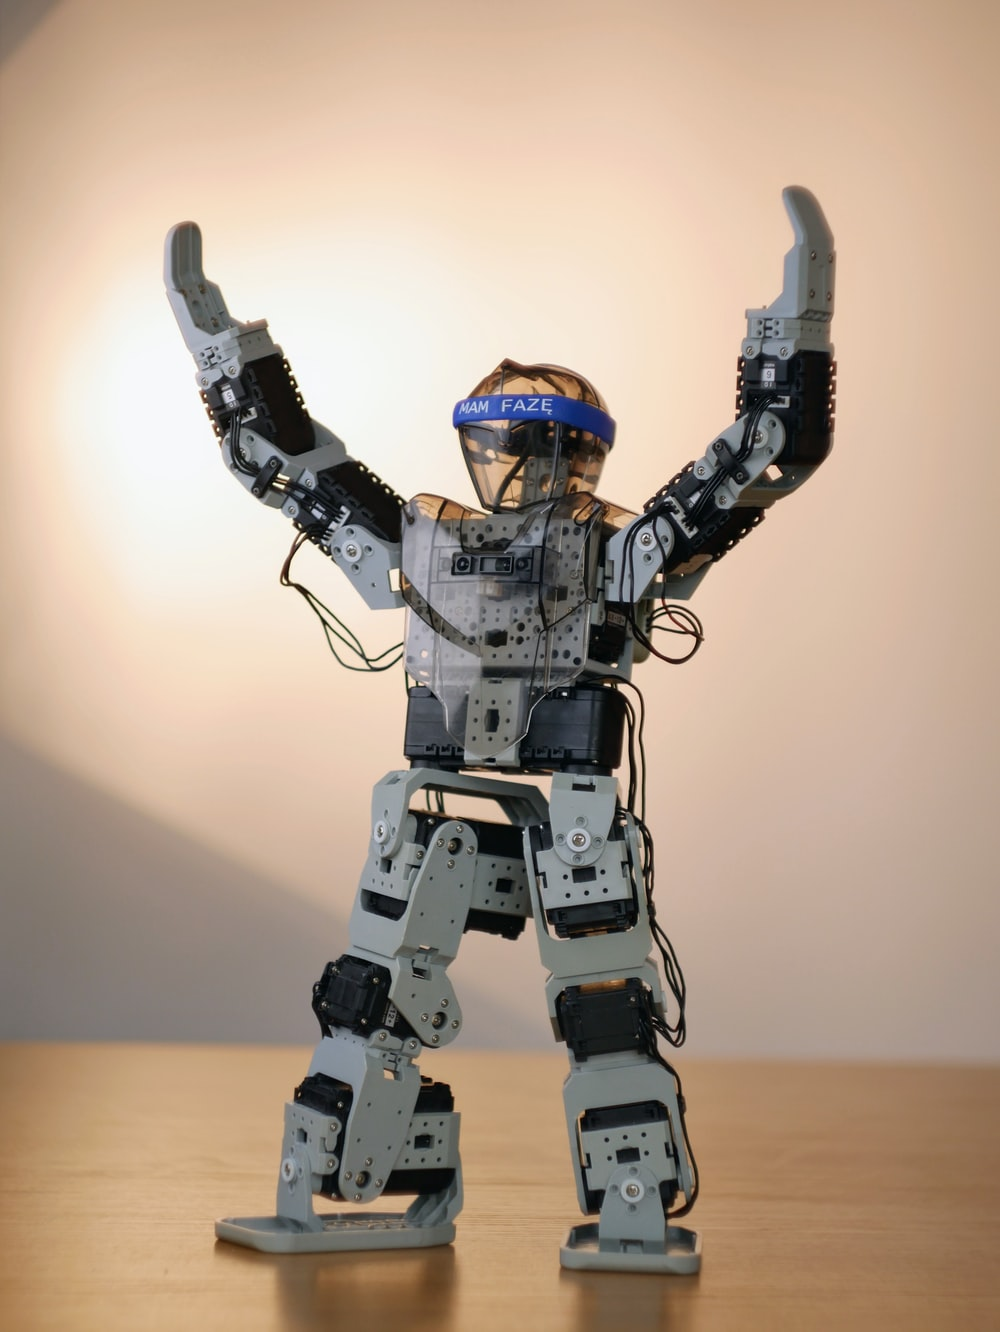 gray robot action figure on brown wooden table